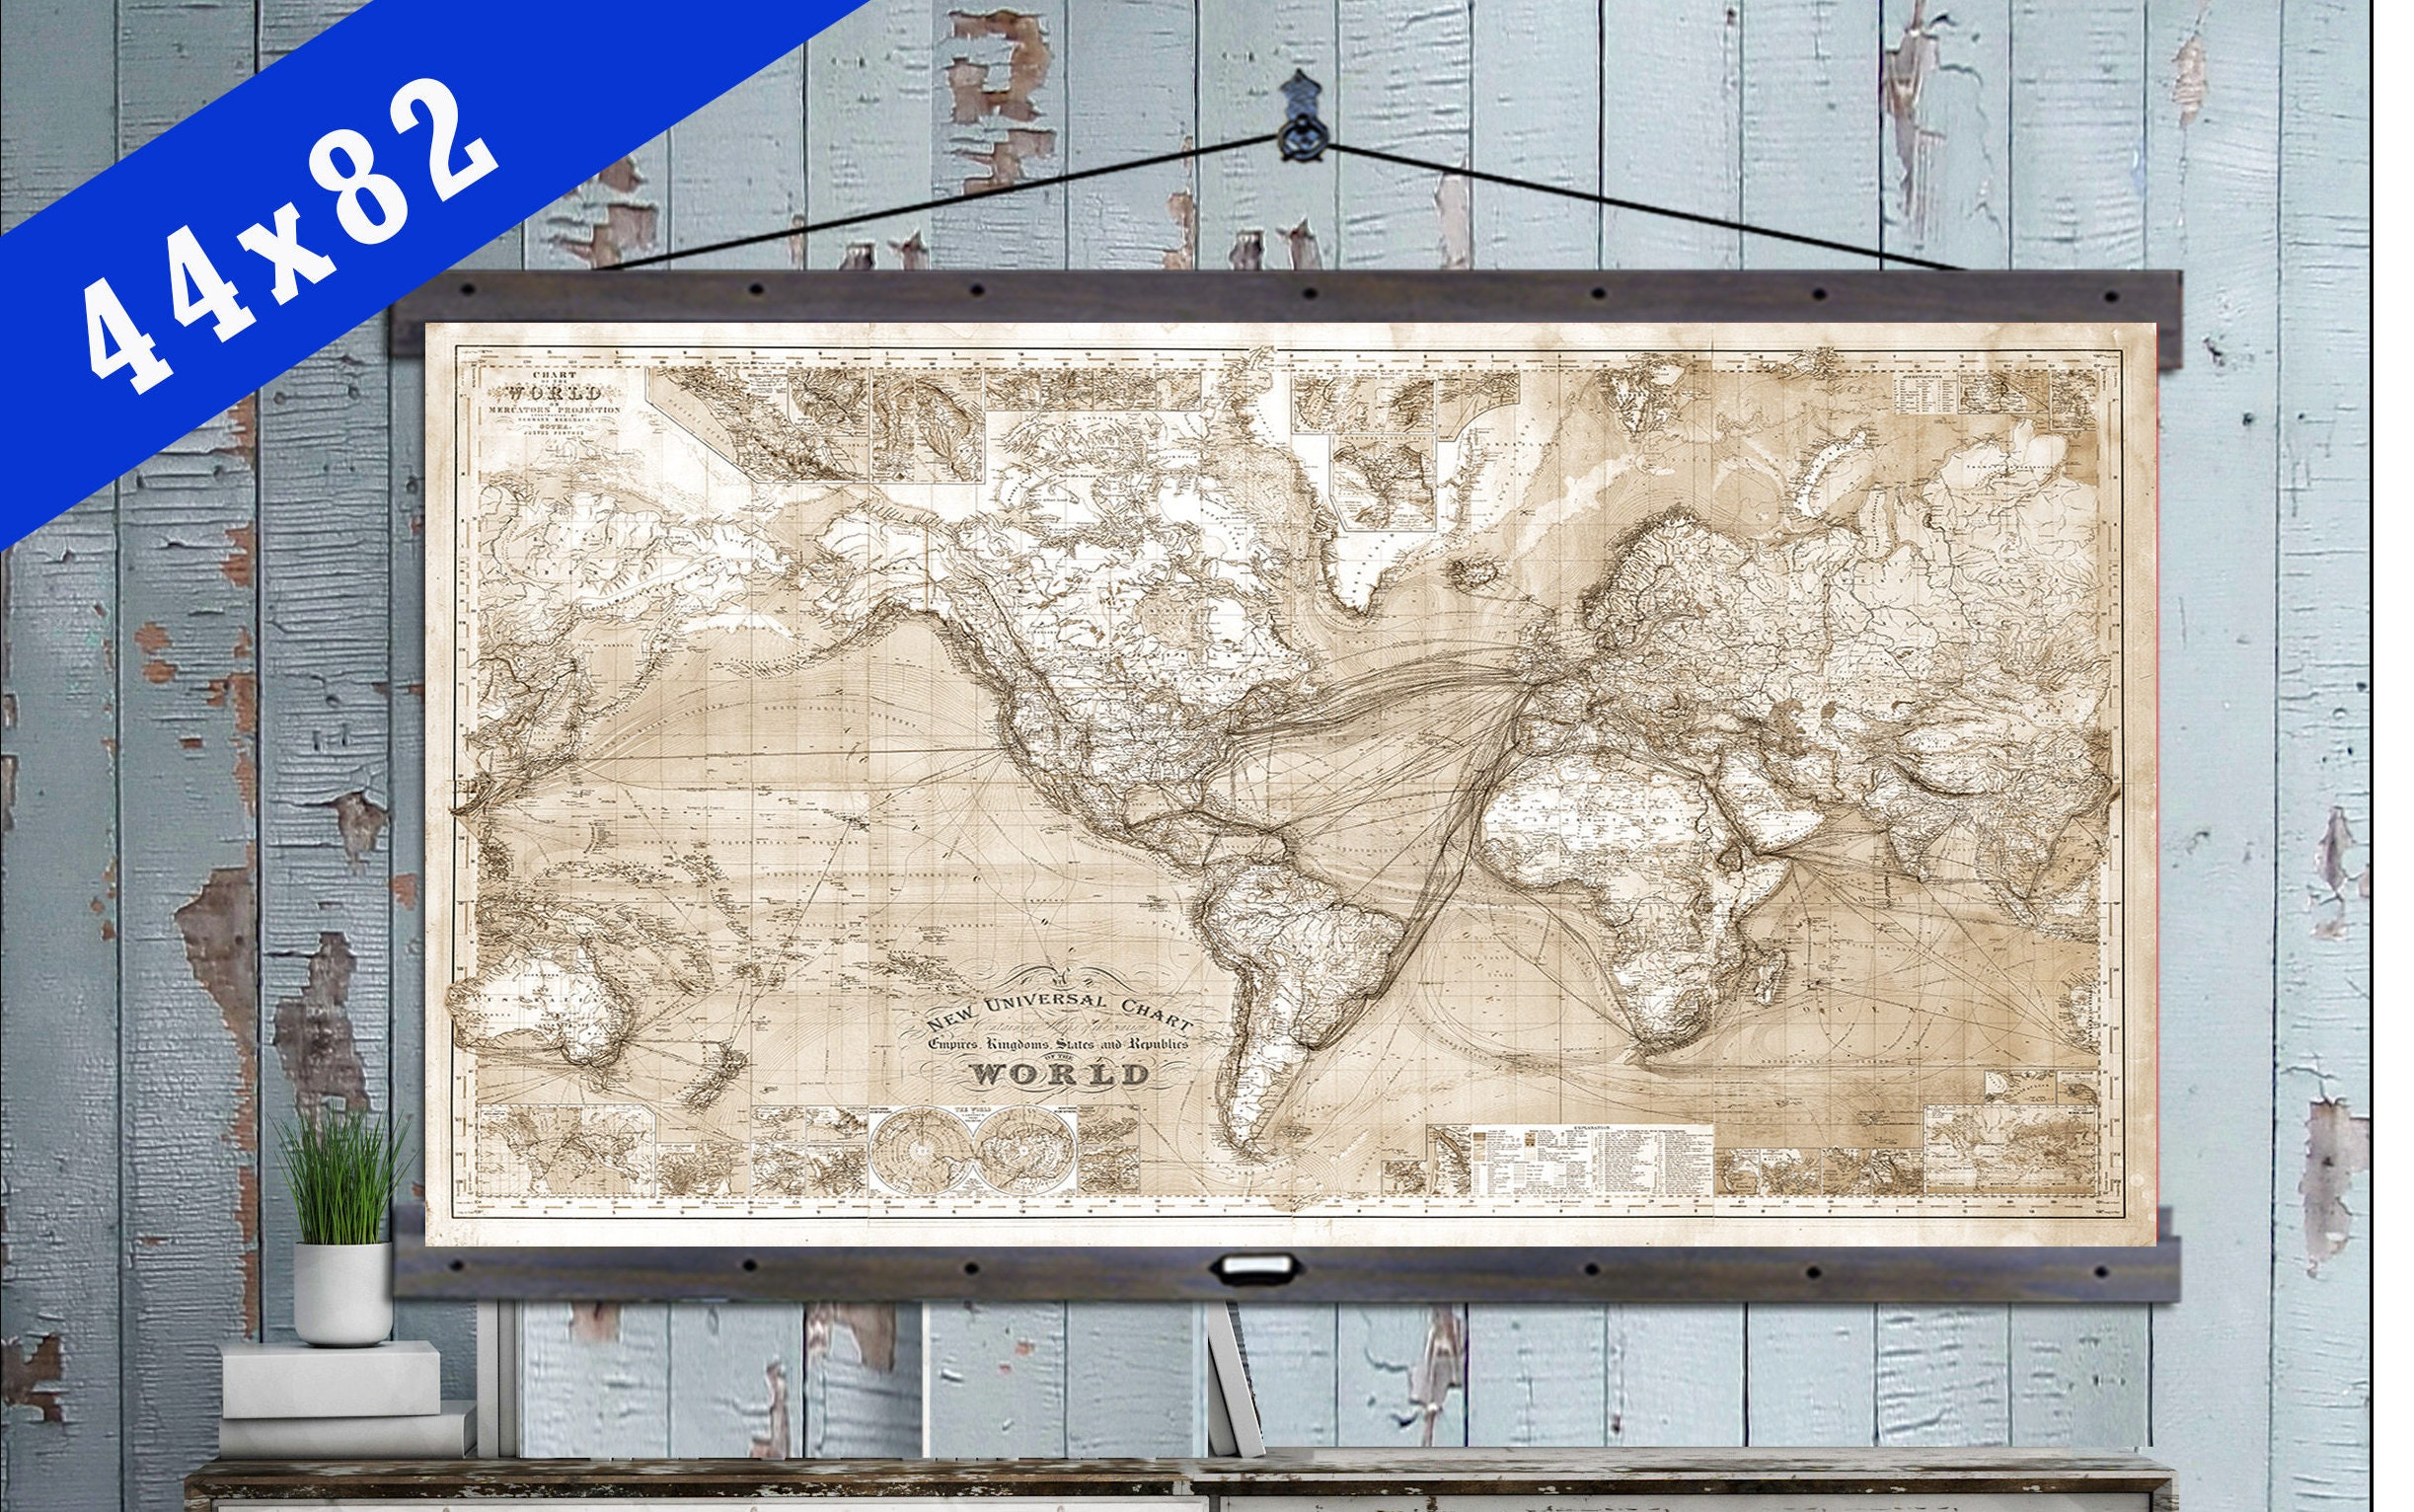 Vintage Pull Down Map. Huge World Map on Canvas 1885. 44x82 on